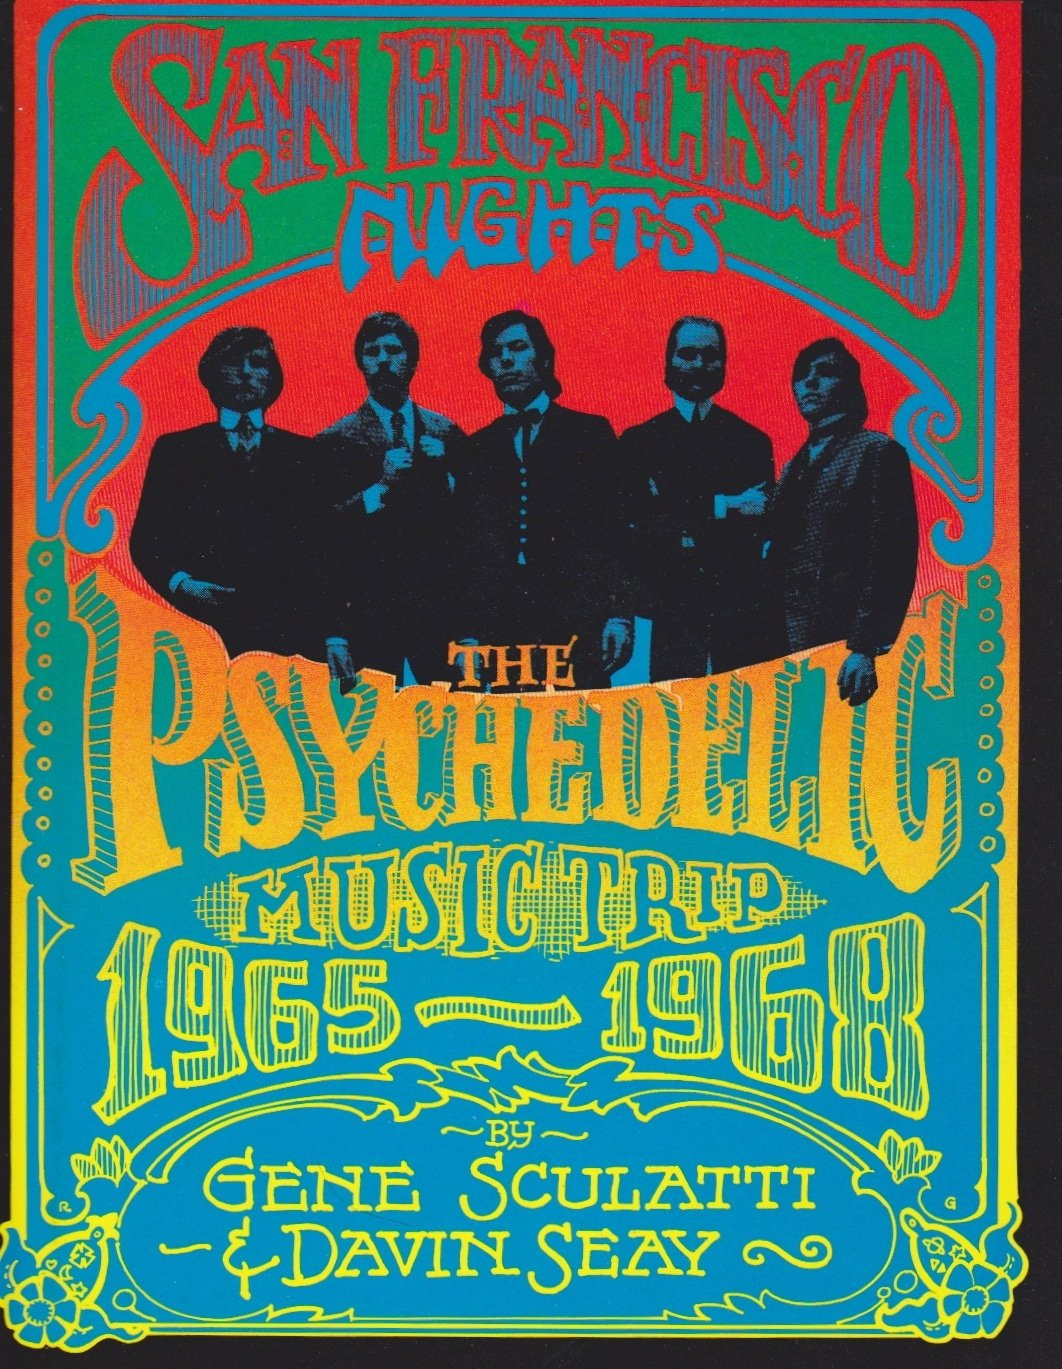 Rick Griffin Original Book Cover Psychedelic Artwork